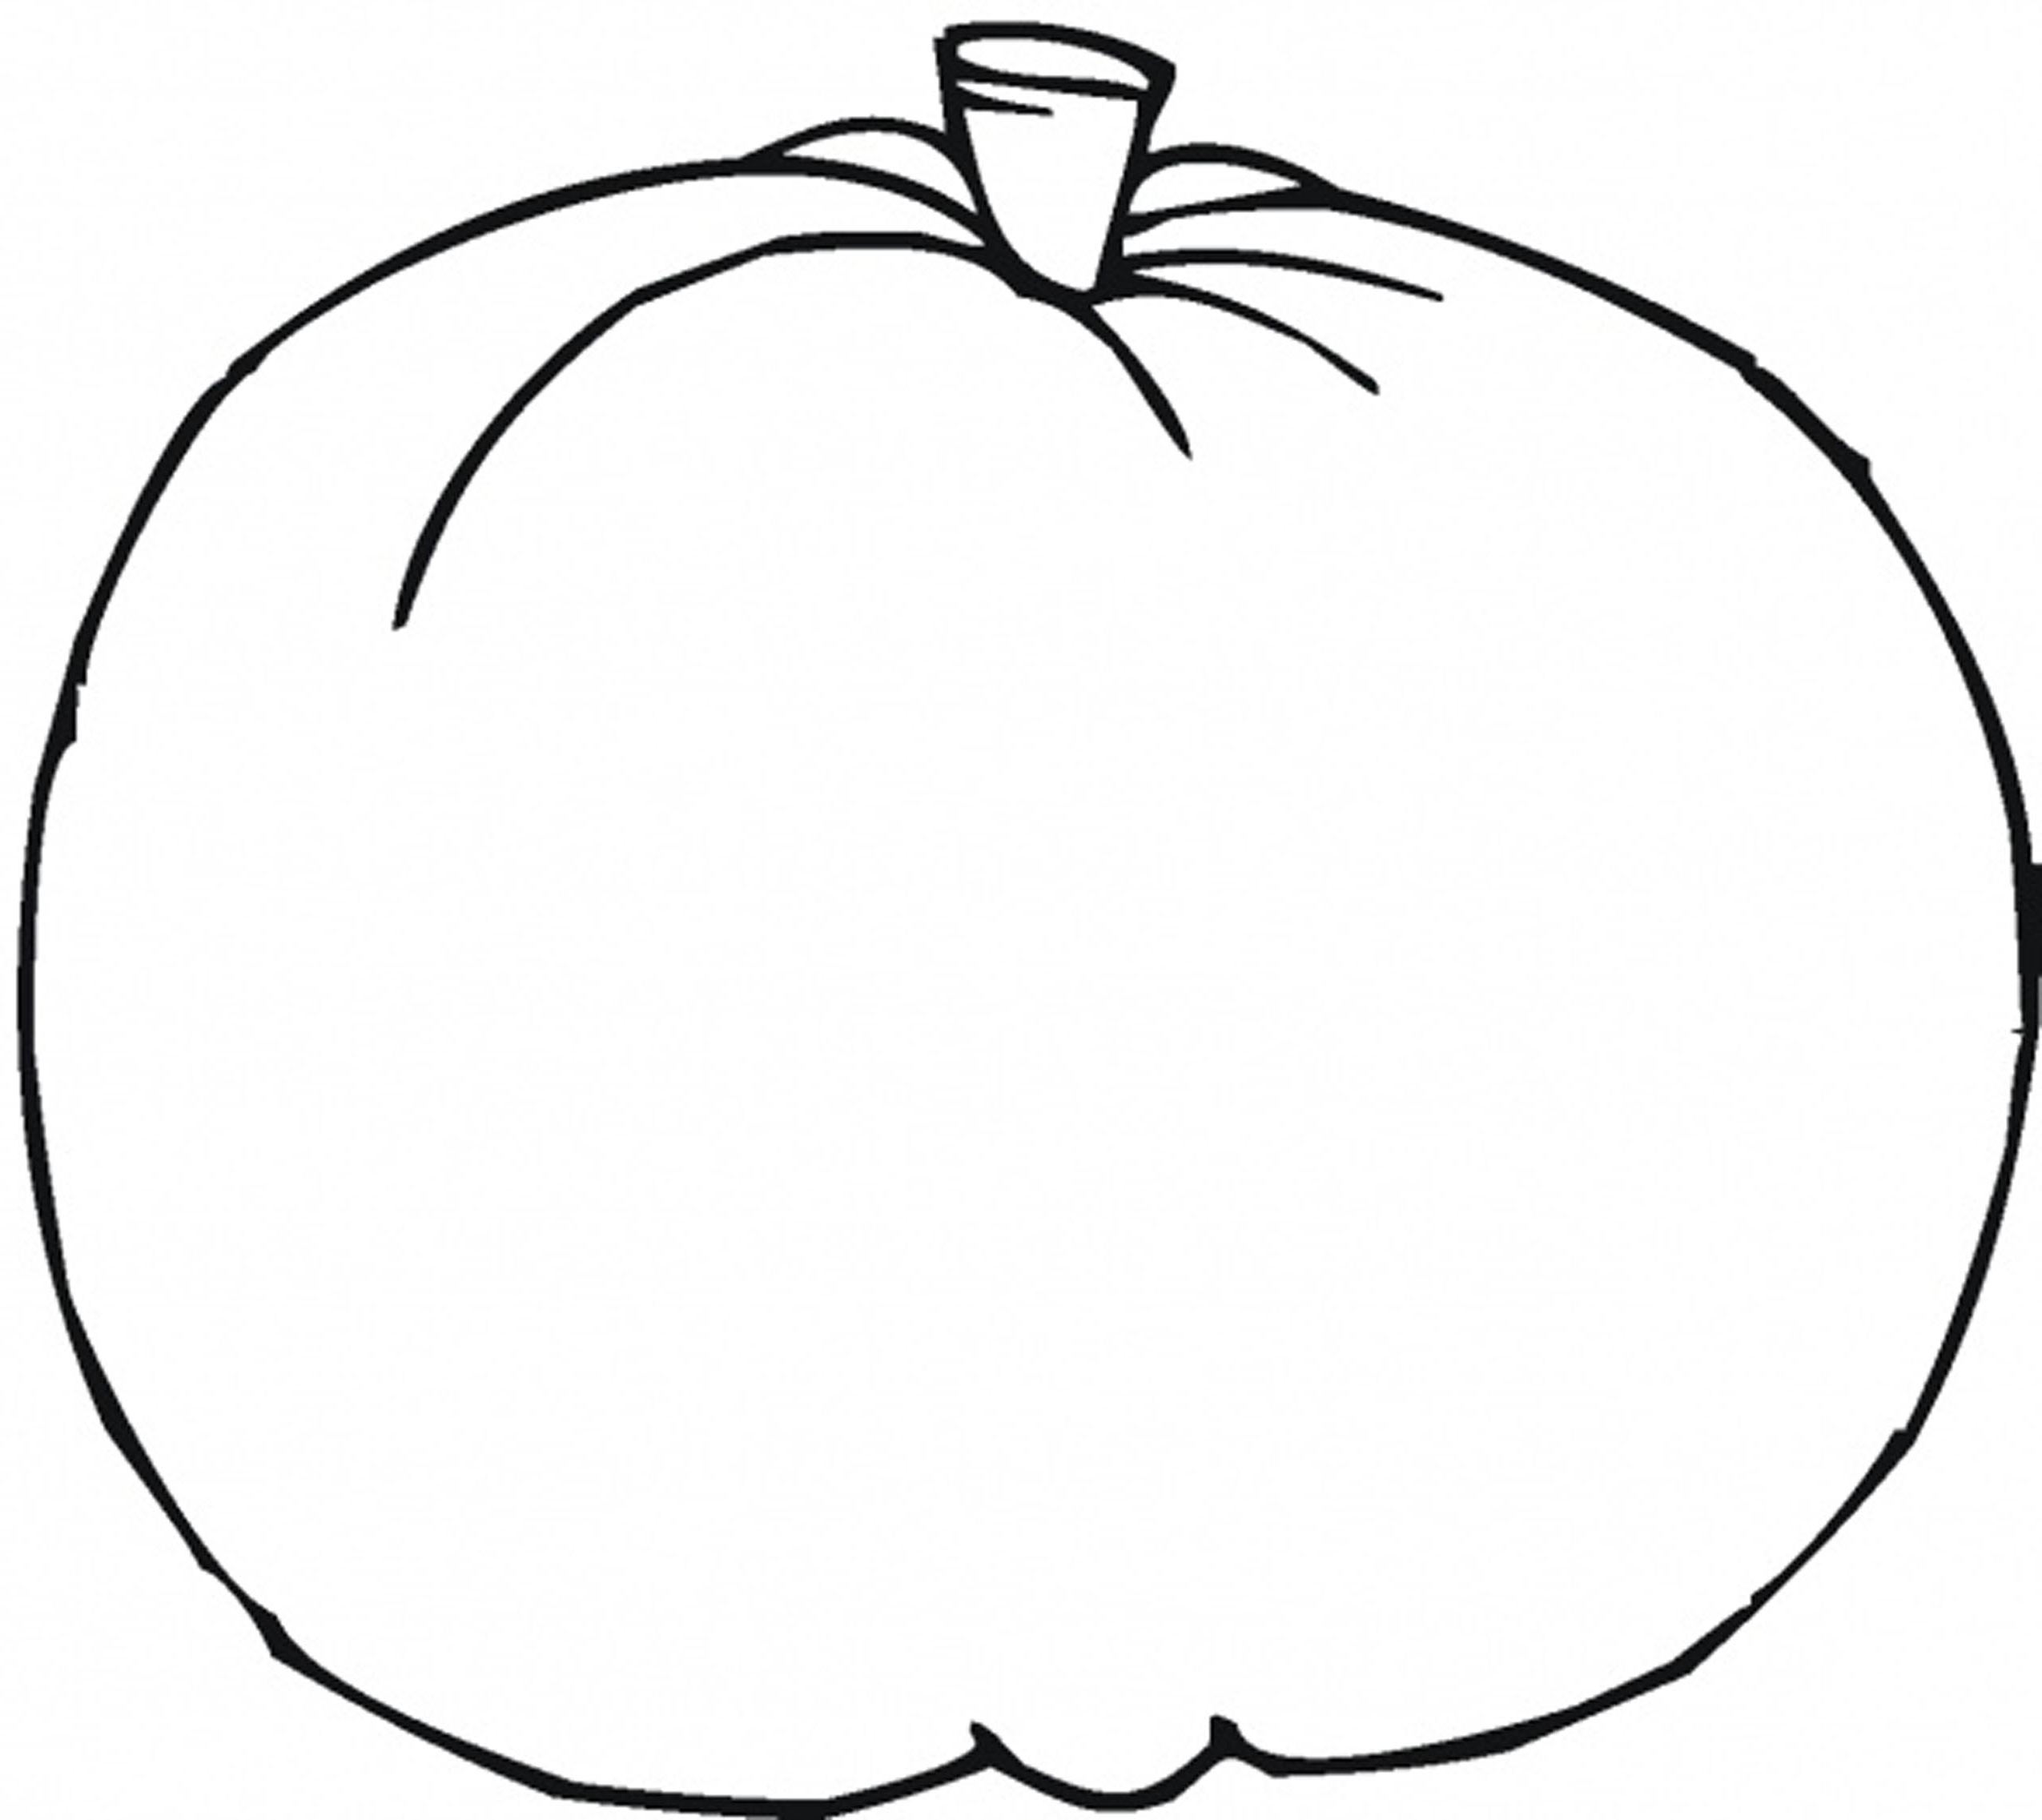 Pumpkin Drawing Template at GetDrawings.com | Free for personal use ...